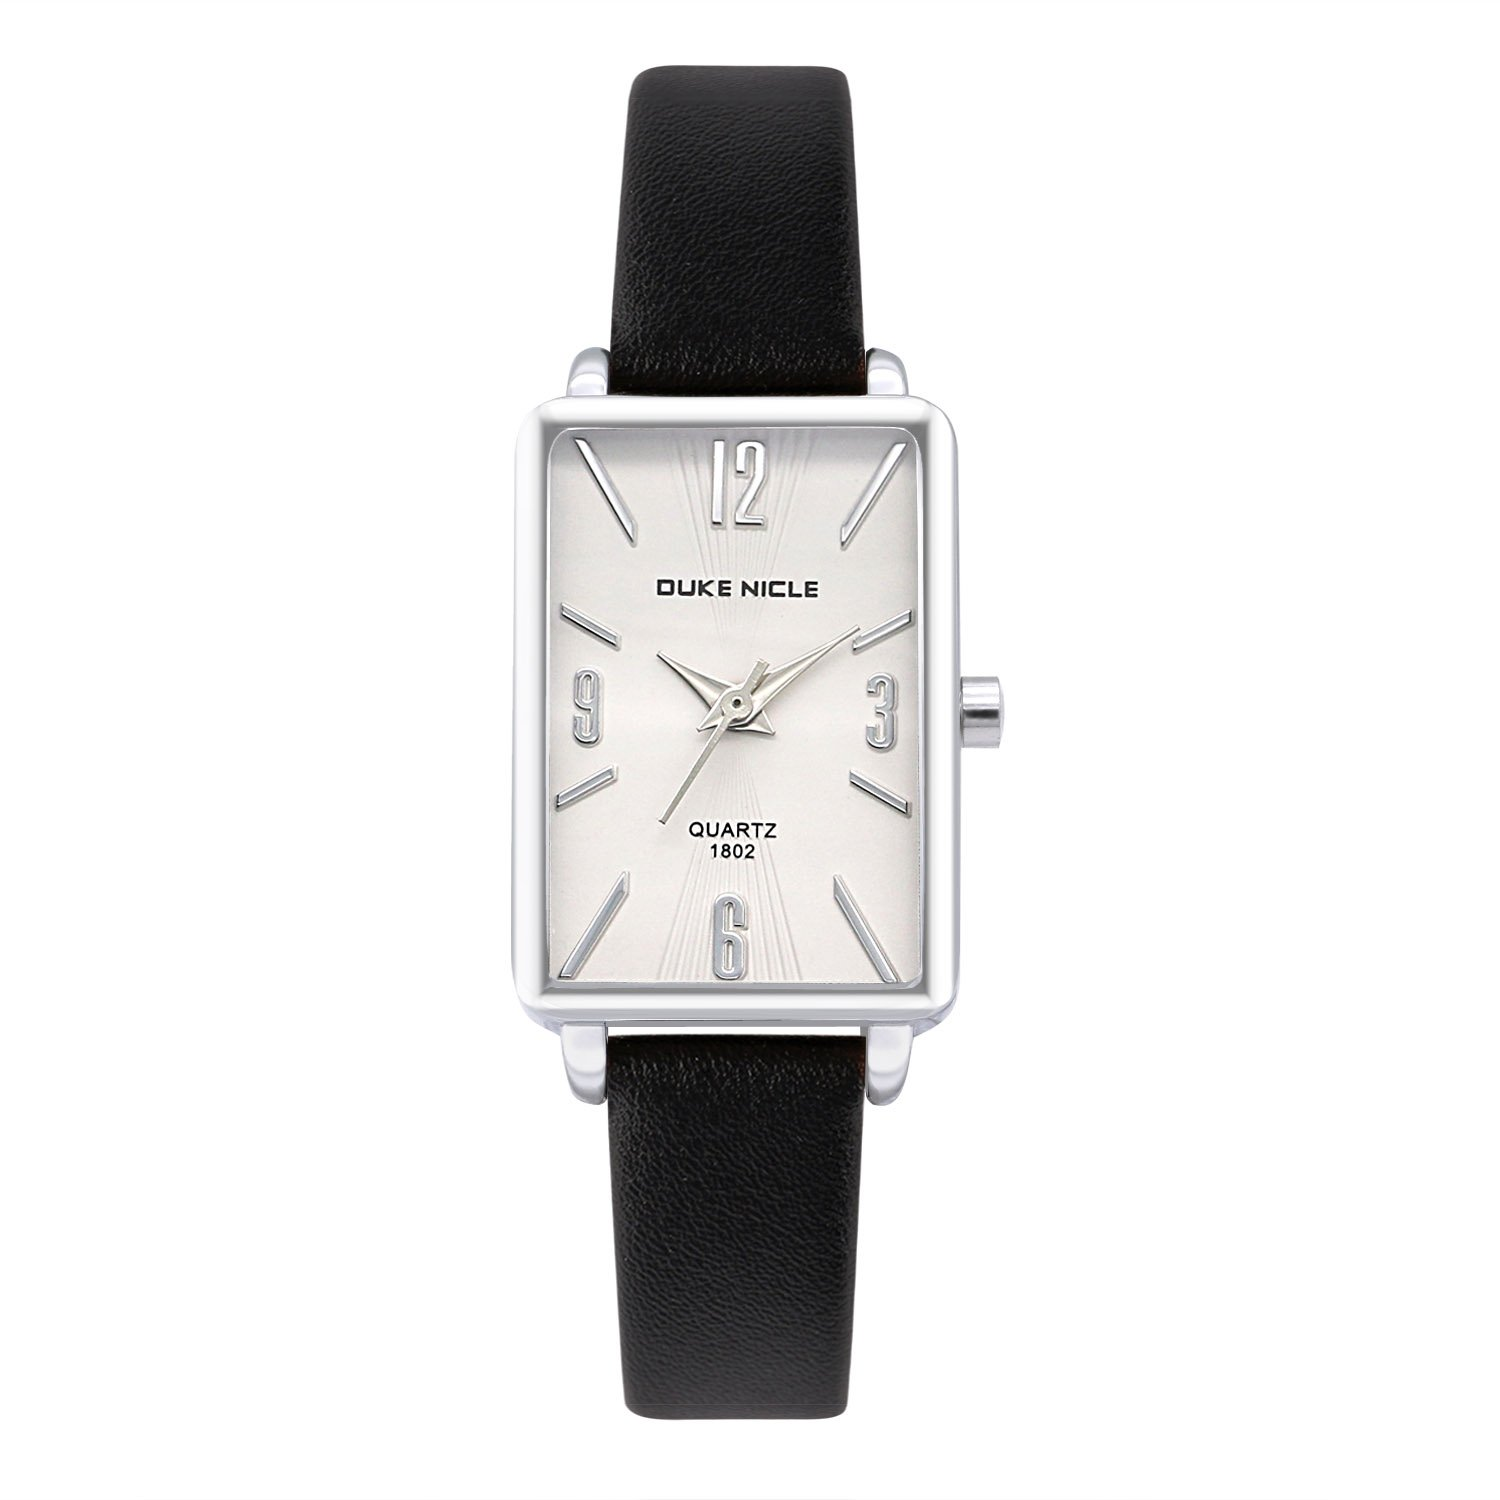 Womens Fashion Watch,Ladies Silver Rectangular Case Luxury Elegant Dress Waterproof Quartz Casual Wrist Watches for Ladies and Girls with Genuine Leather Band (Black)